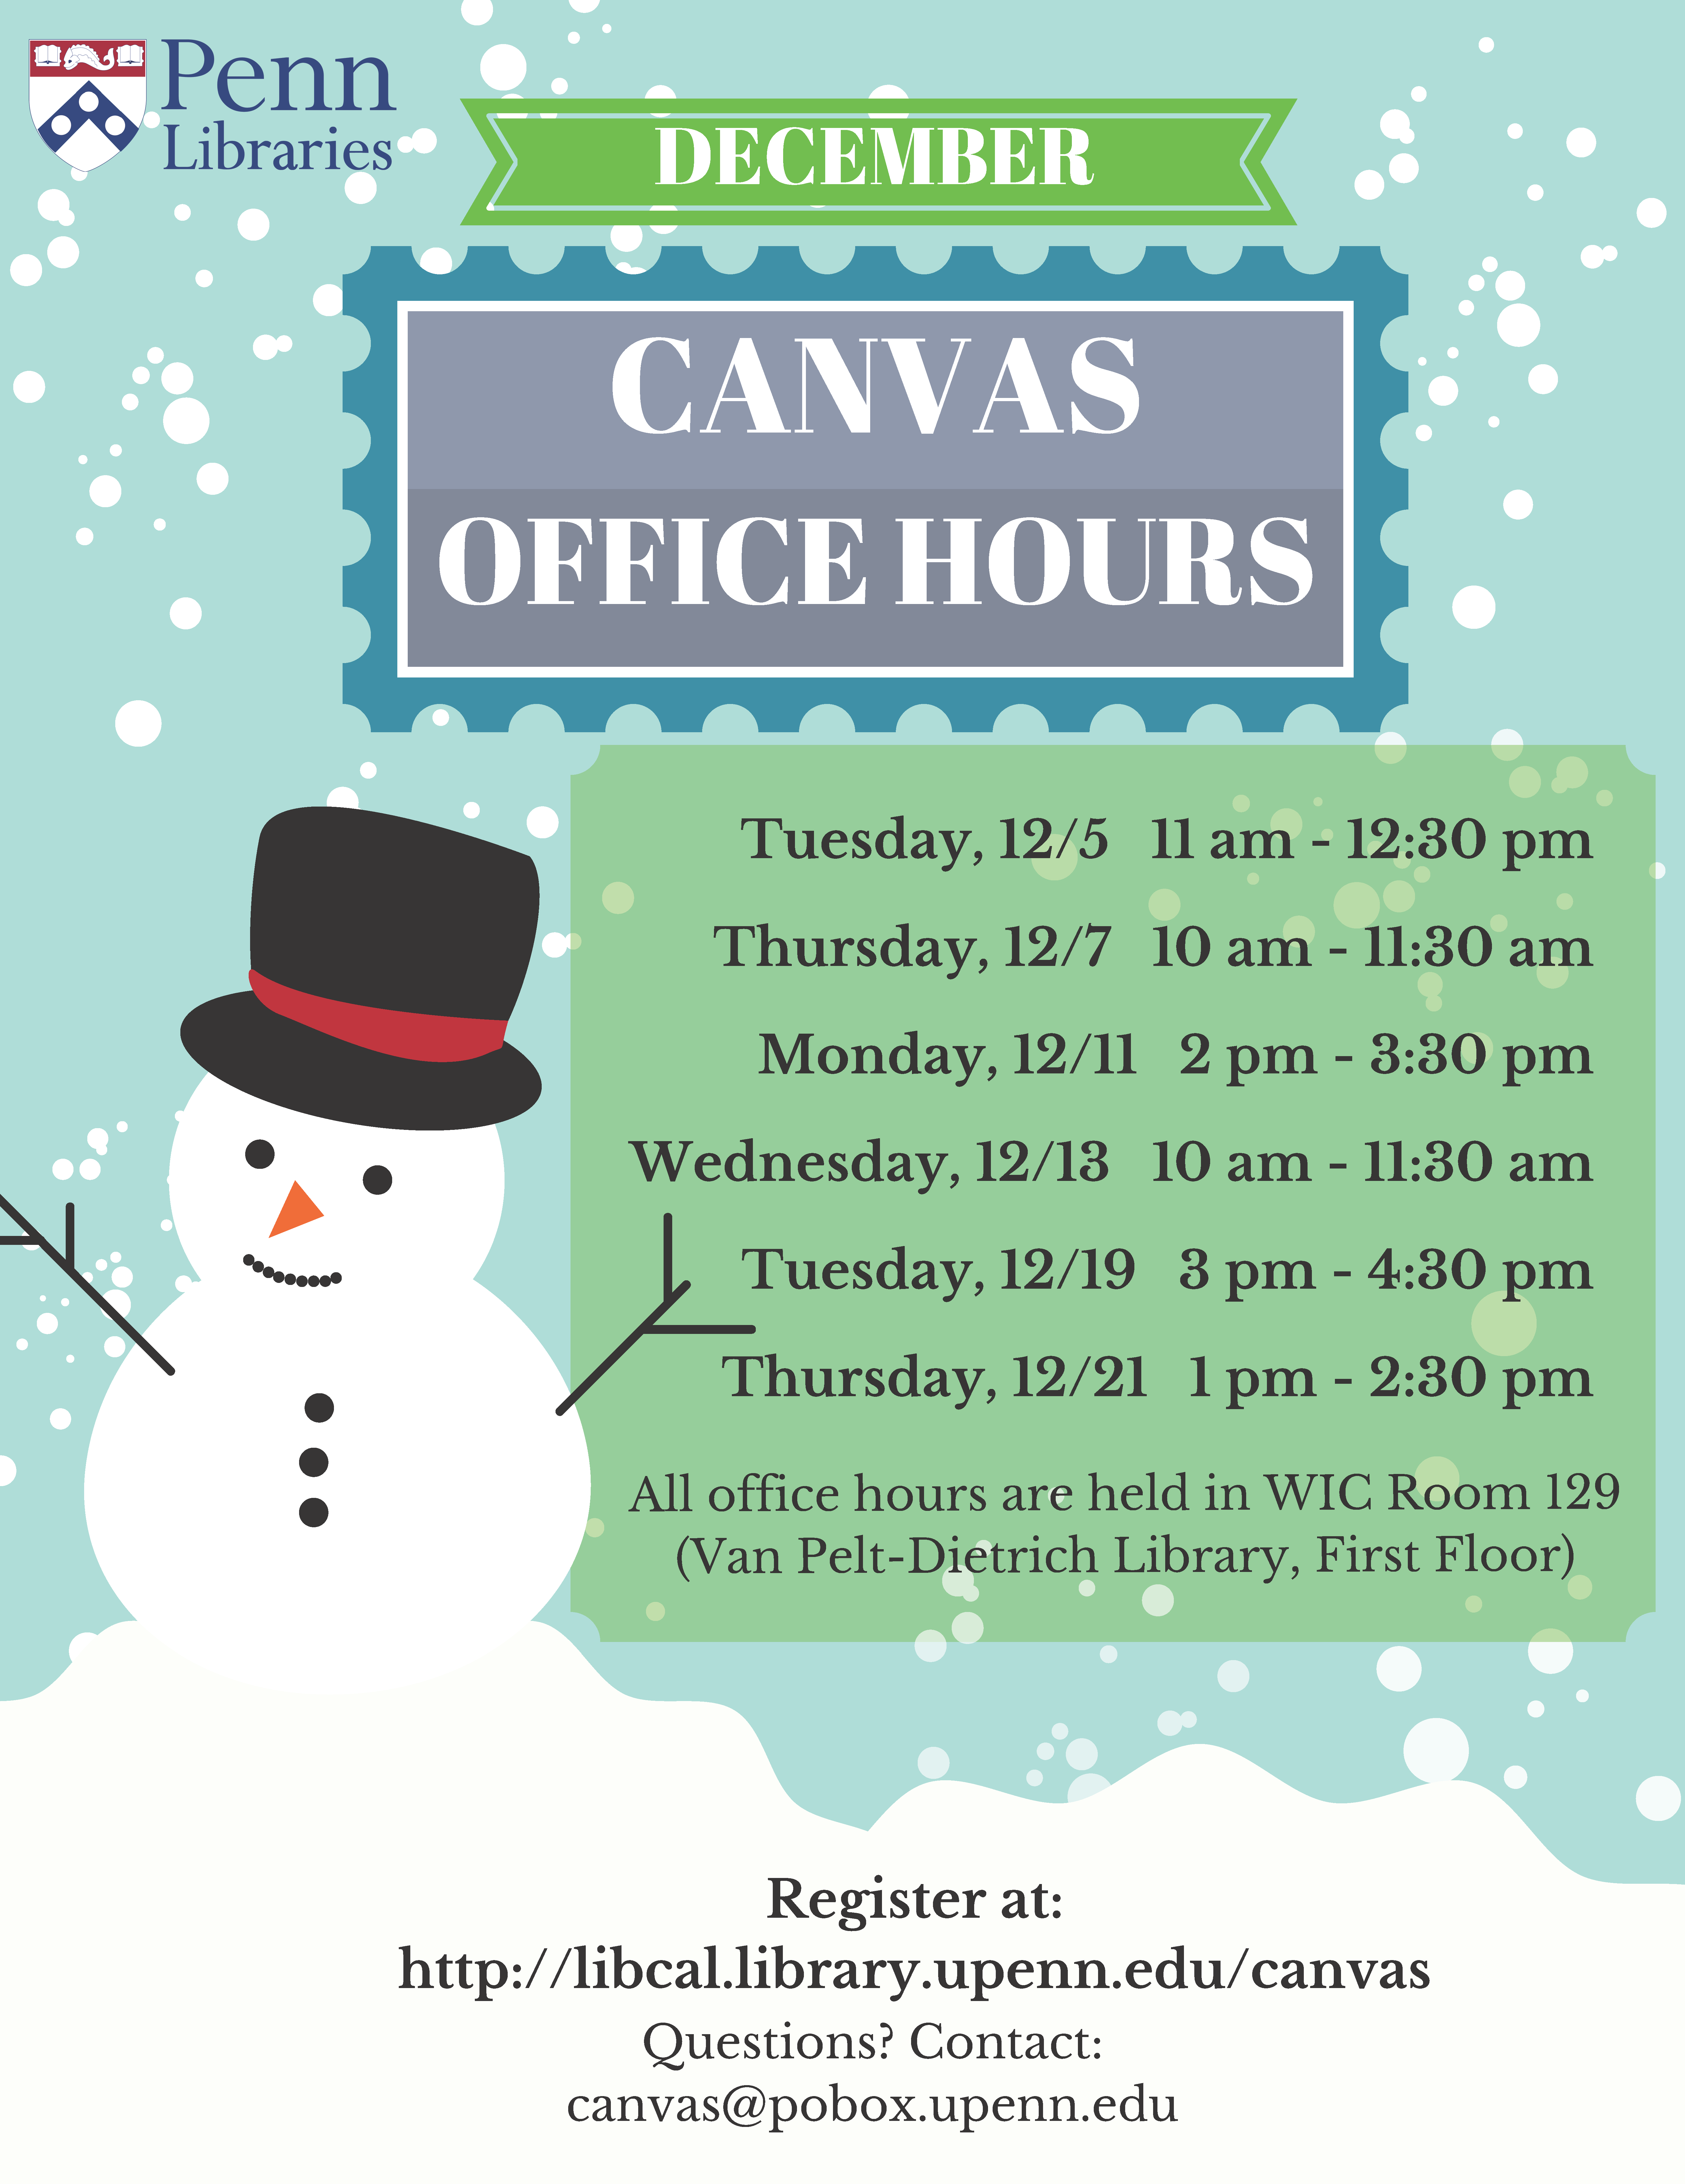 This flyer contains the following information: December Canvas Office Hours will take place on these dates--Tuesday, December 5th, 11am-12:30pm; Thursday, December 7th, 10am-11:30am; Monday, December 11th, 2-3:30pm; Wednesday, December 13th, 10-11:30am; Tuesday, December 19th, 3-4:30pm; Thursday, December 21st, 1-2:30pm. All office hours are held in the Weigle Information Commons in Room 129, which is on the first floor of the Van Pelt-Dietrich Library). You can register for Canvas office hours at the following web address: http://libcal.library.upenn.edu/canvas. If you have questions, please email canvas@pobox.upenn.edu.